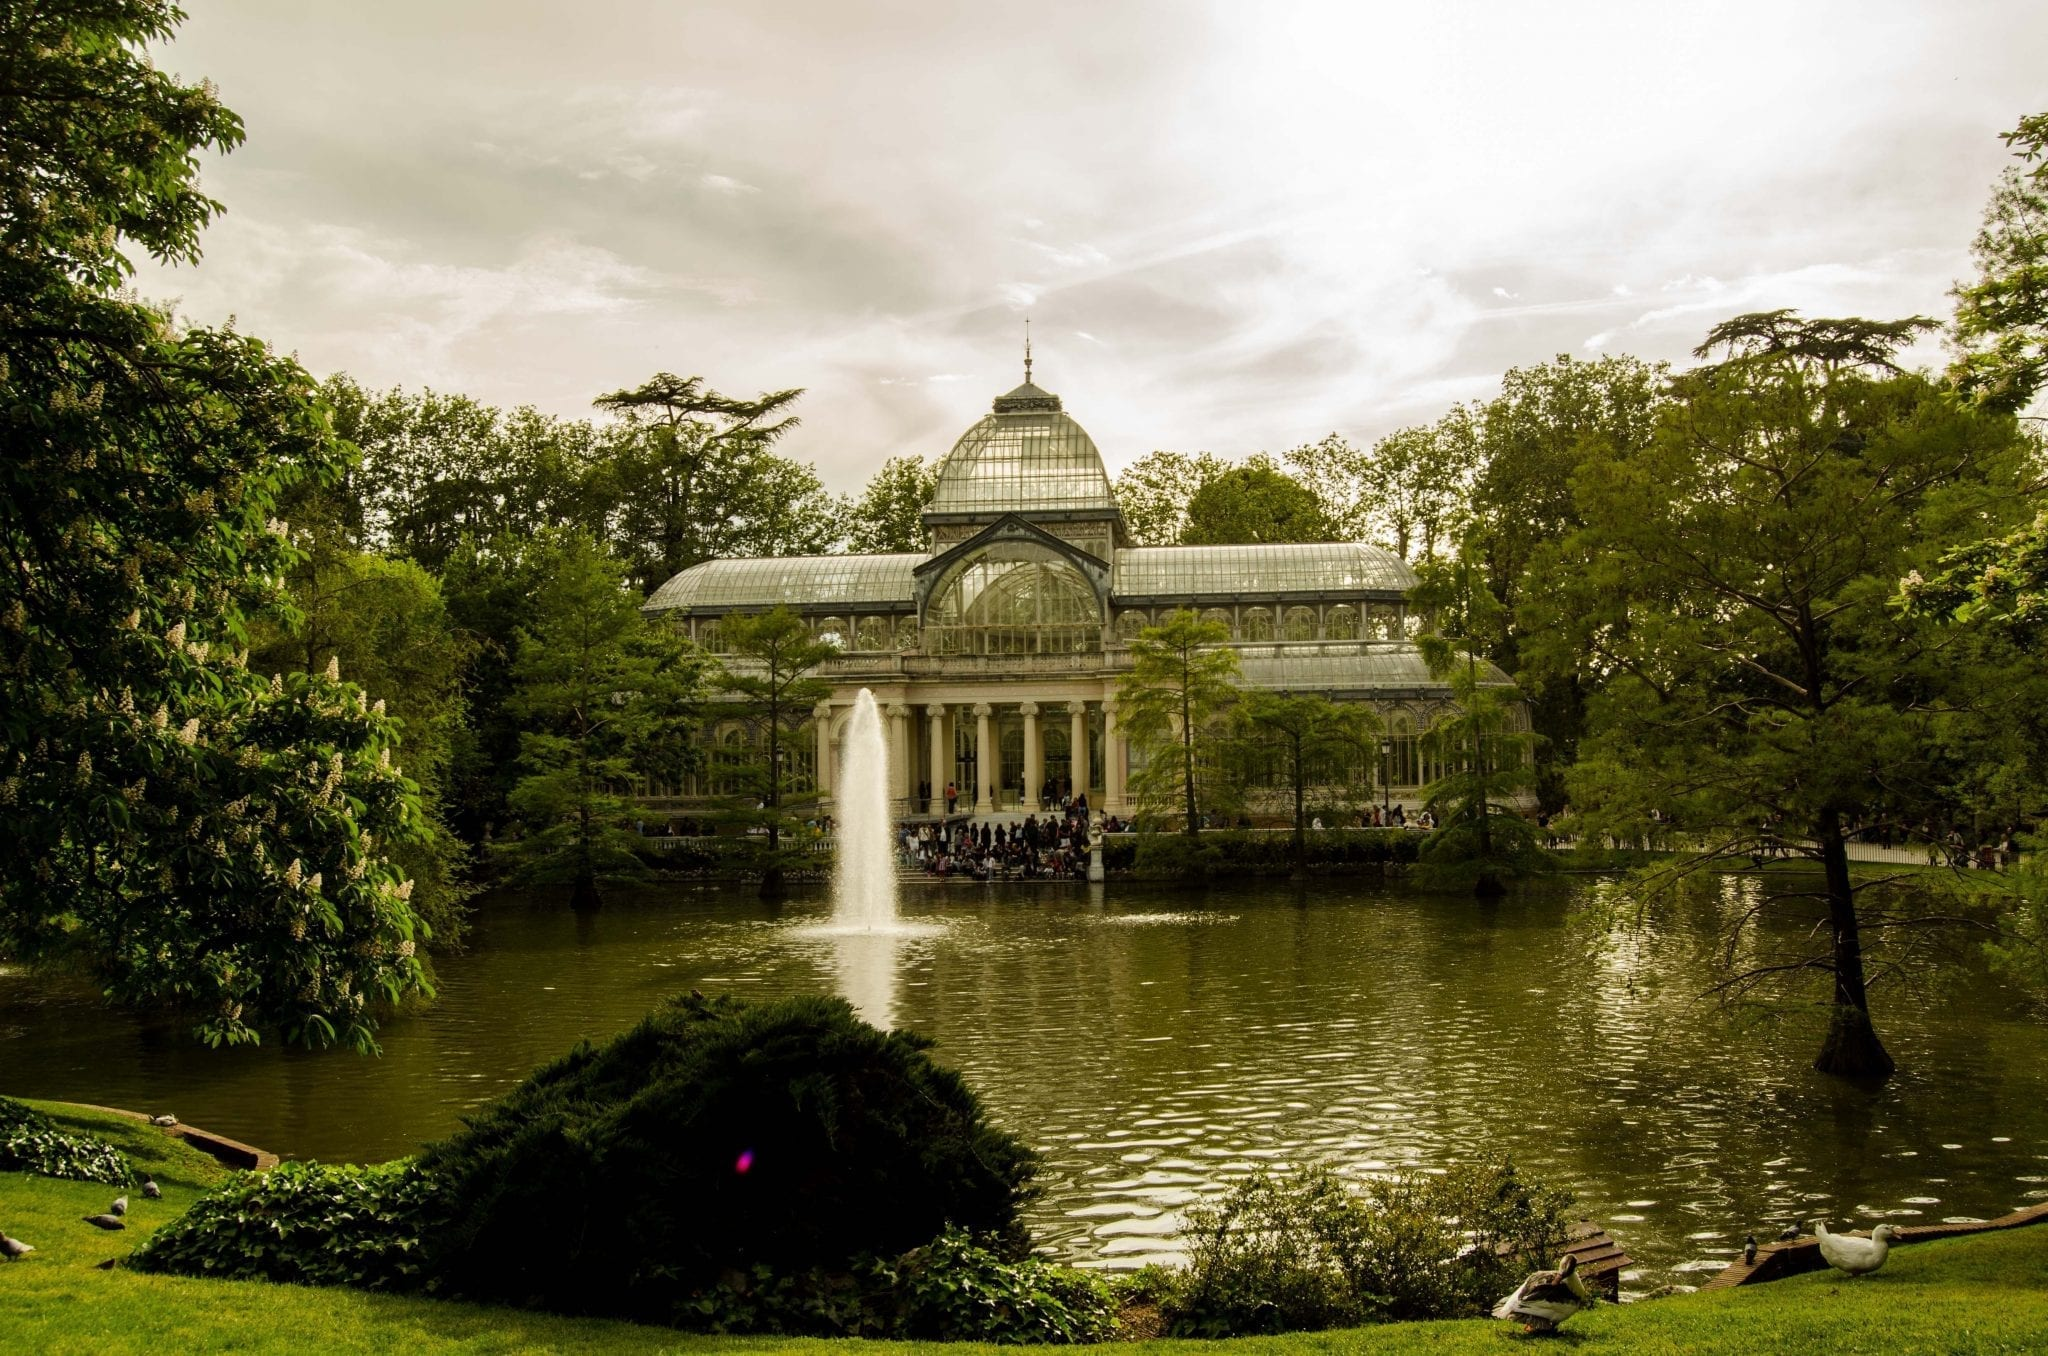 The Glass Palace at the Retiro